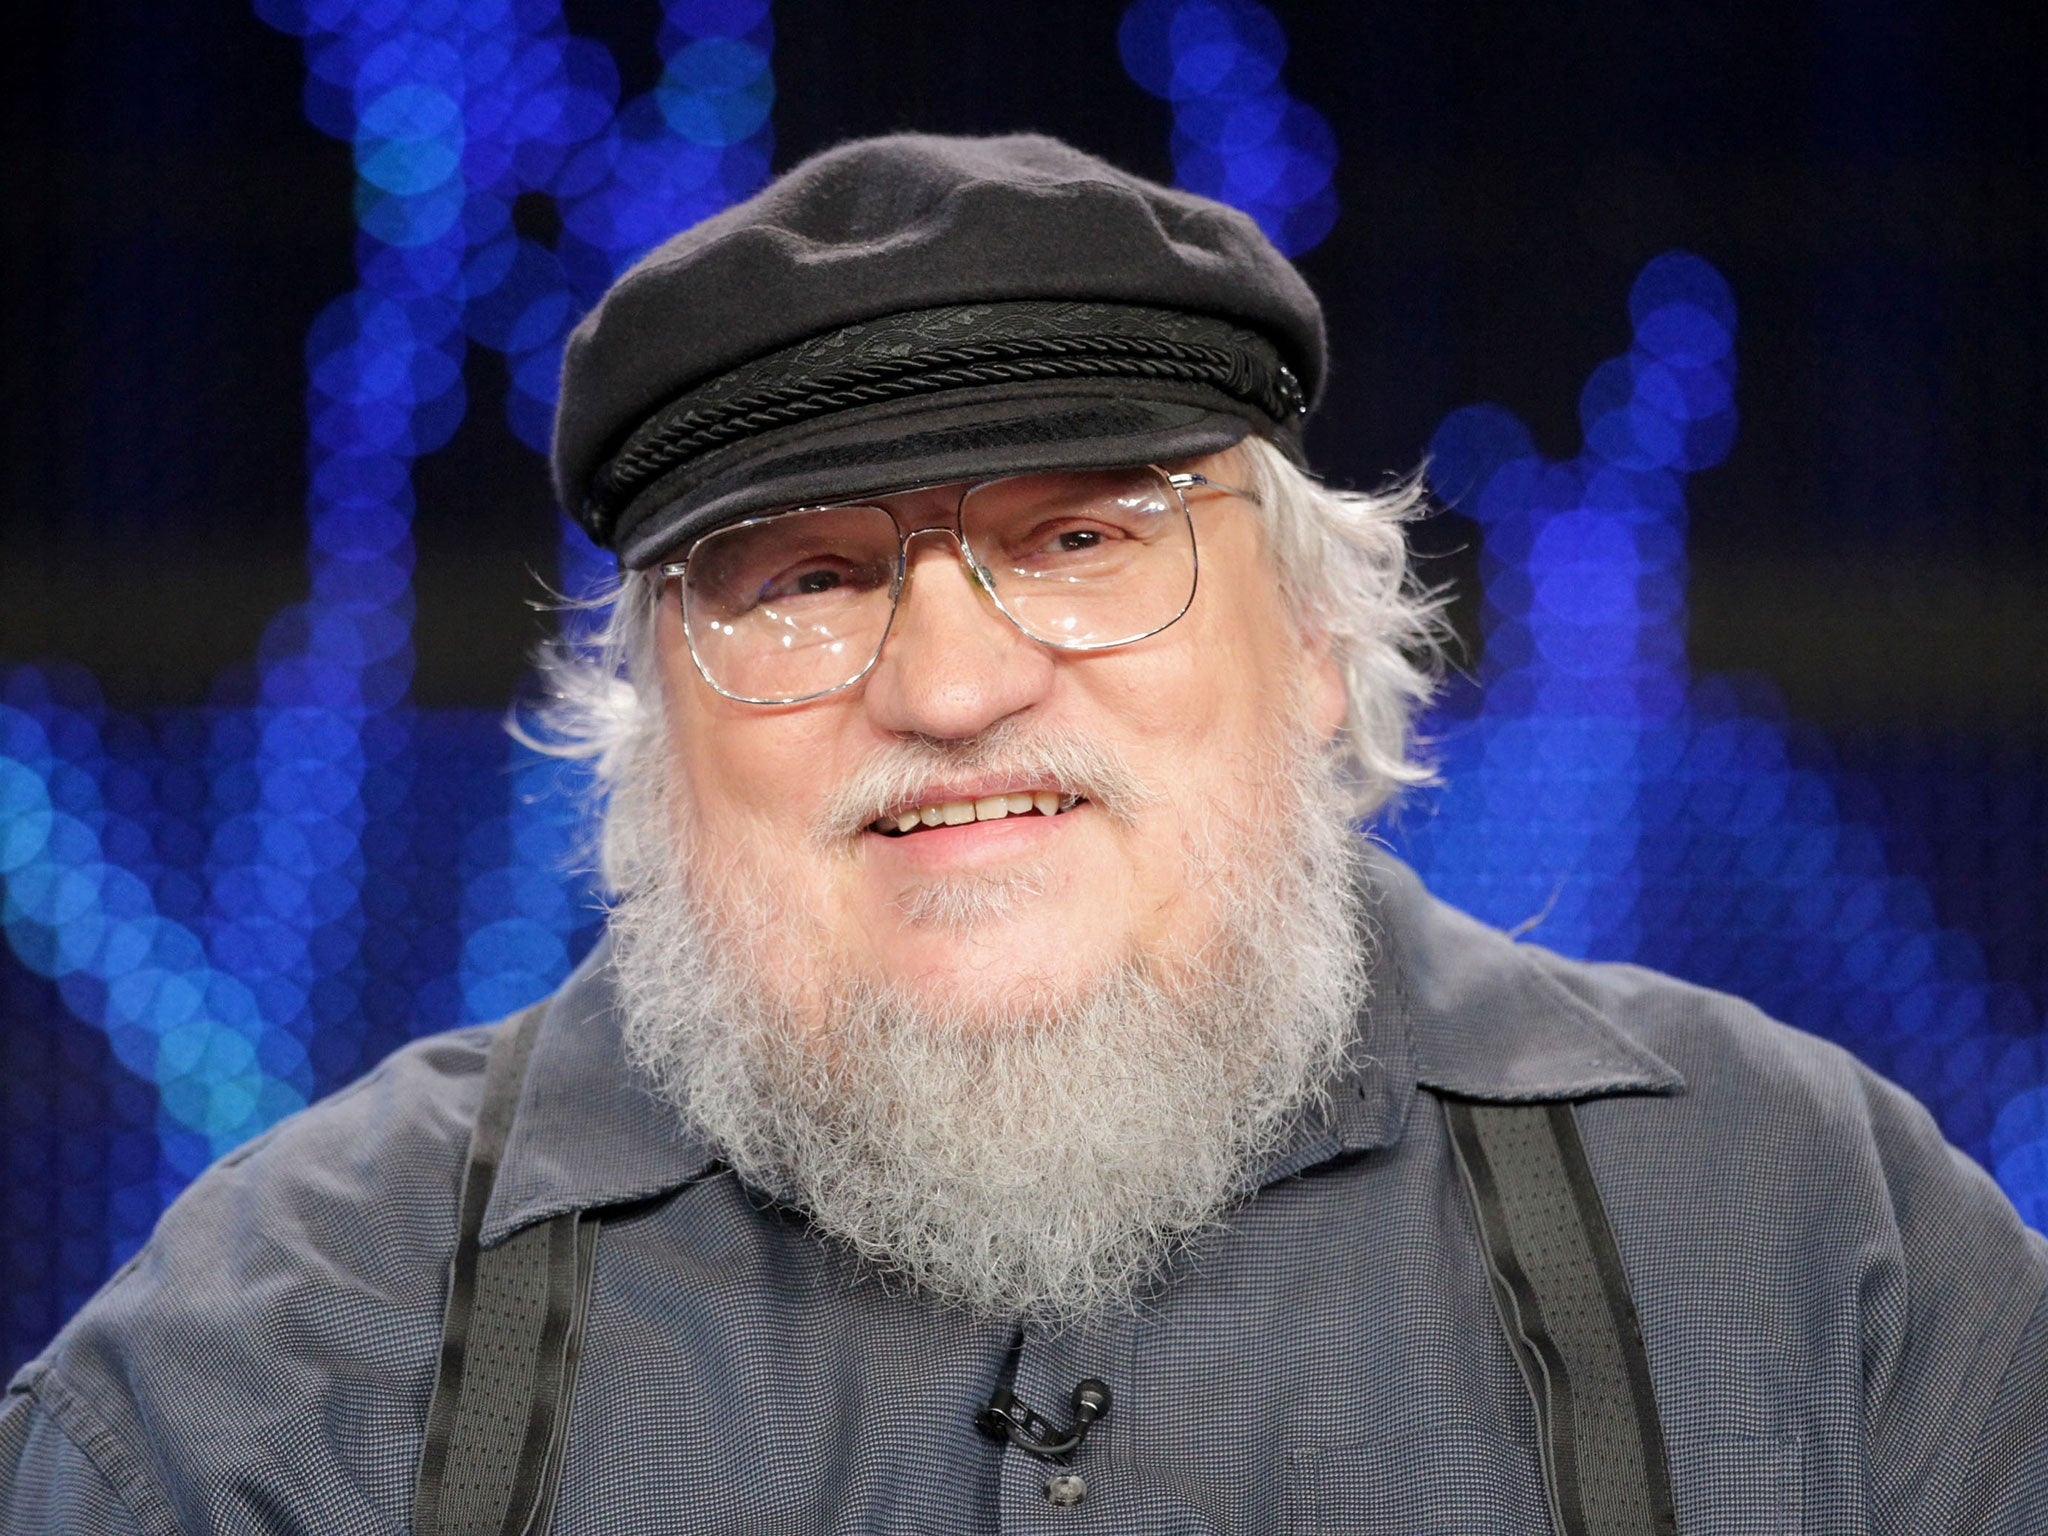 Game Of Thrones Author George RR Martin Says 'f*** You' To